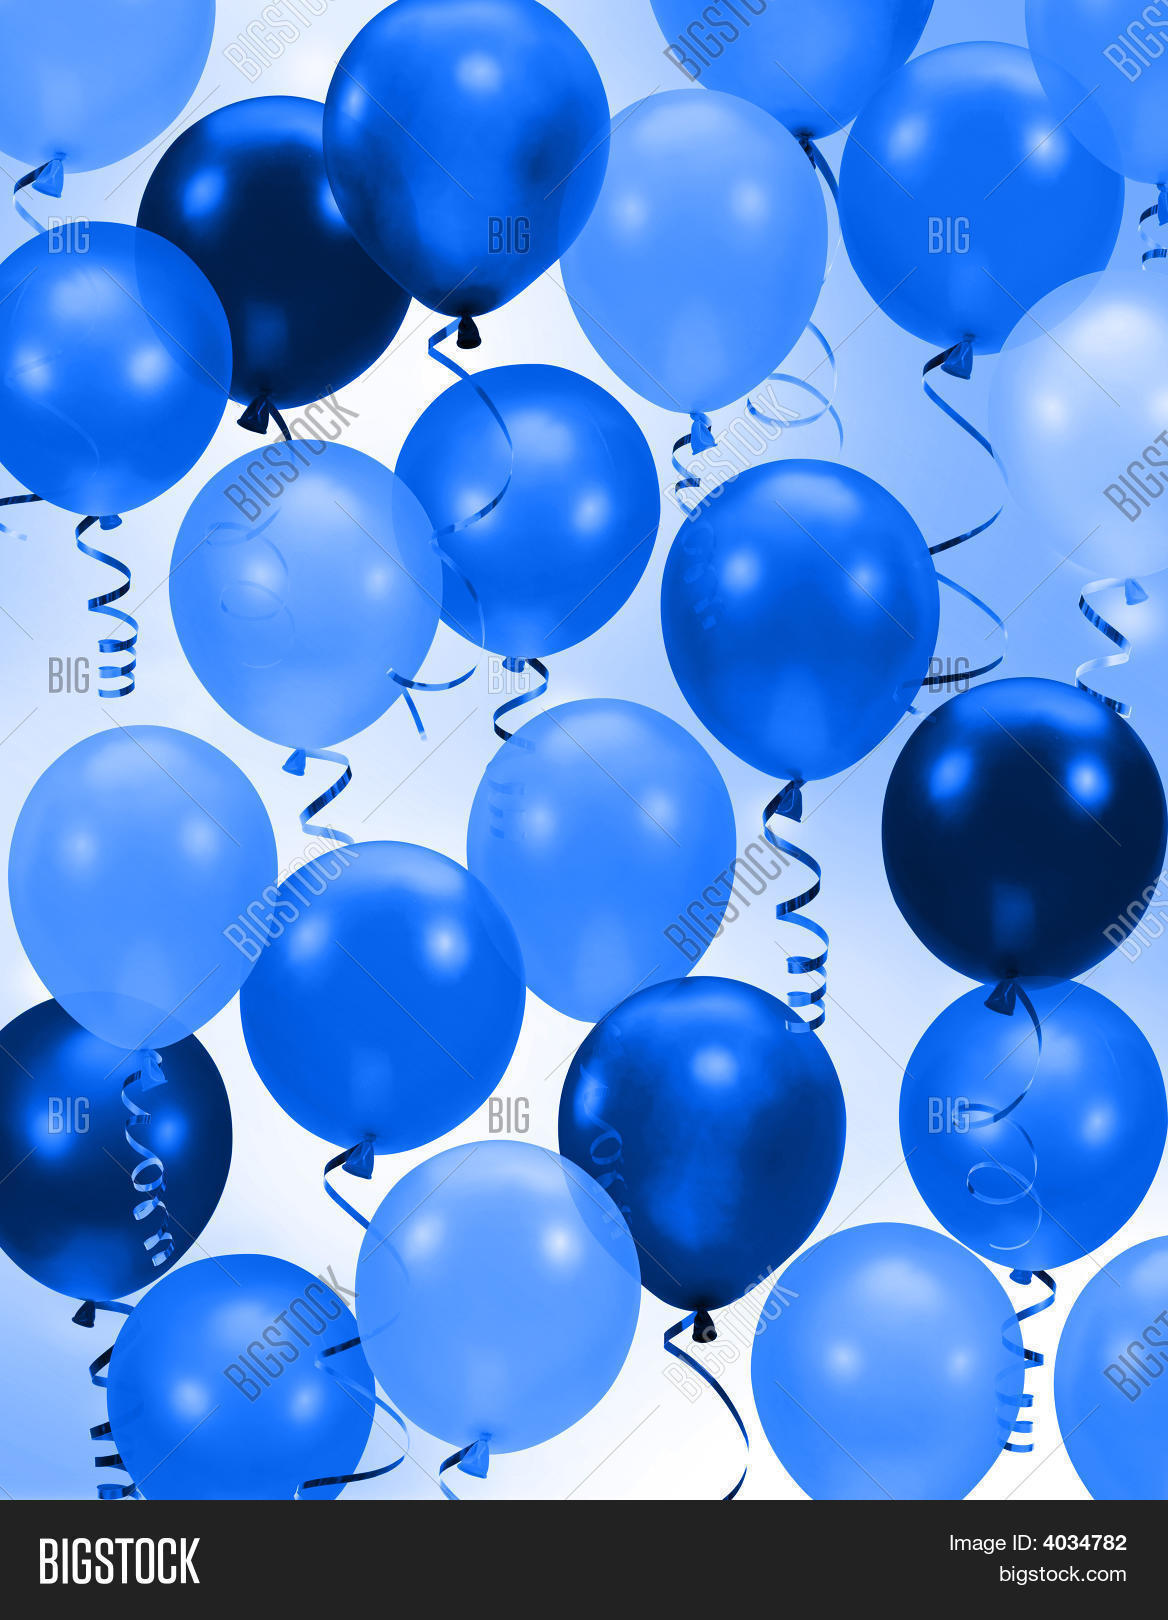 party blue balloons image photo free trial bigstock